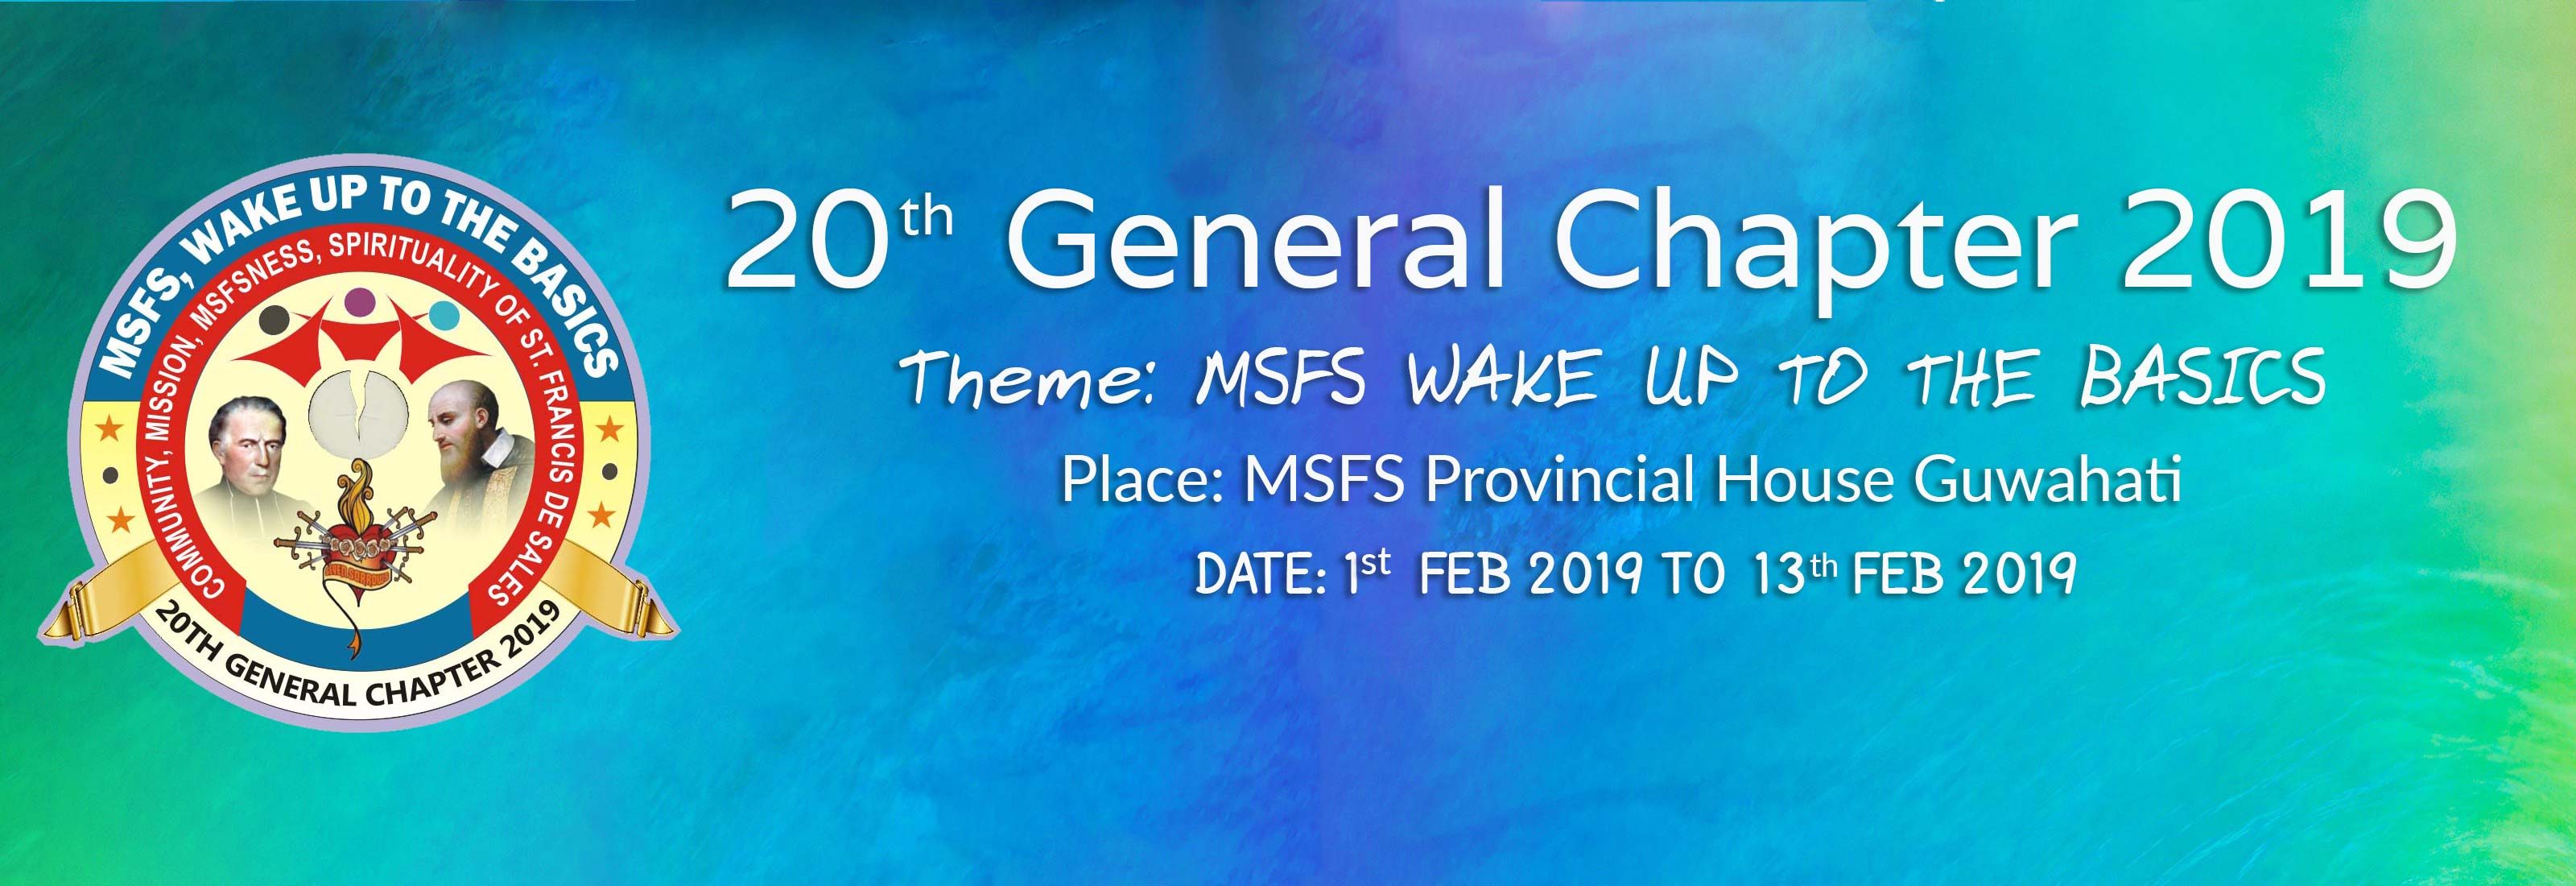 20th msfs general chapter 2019